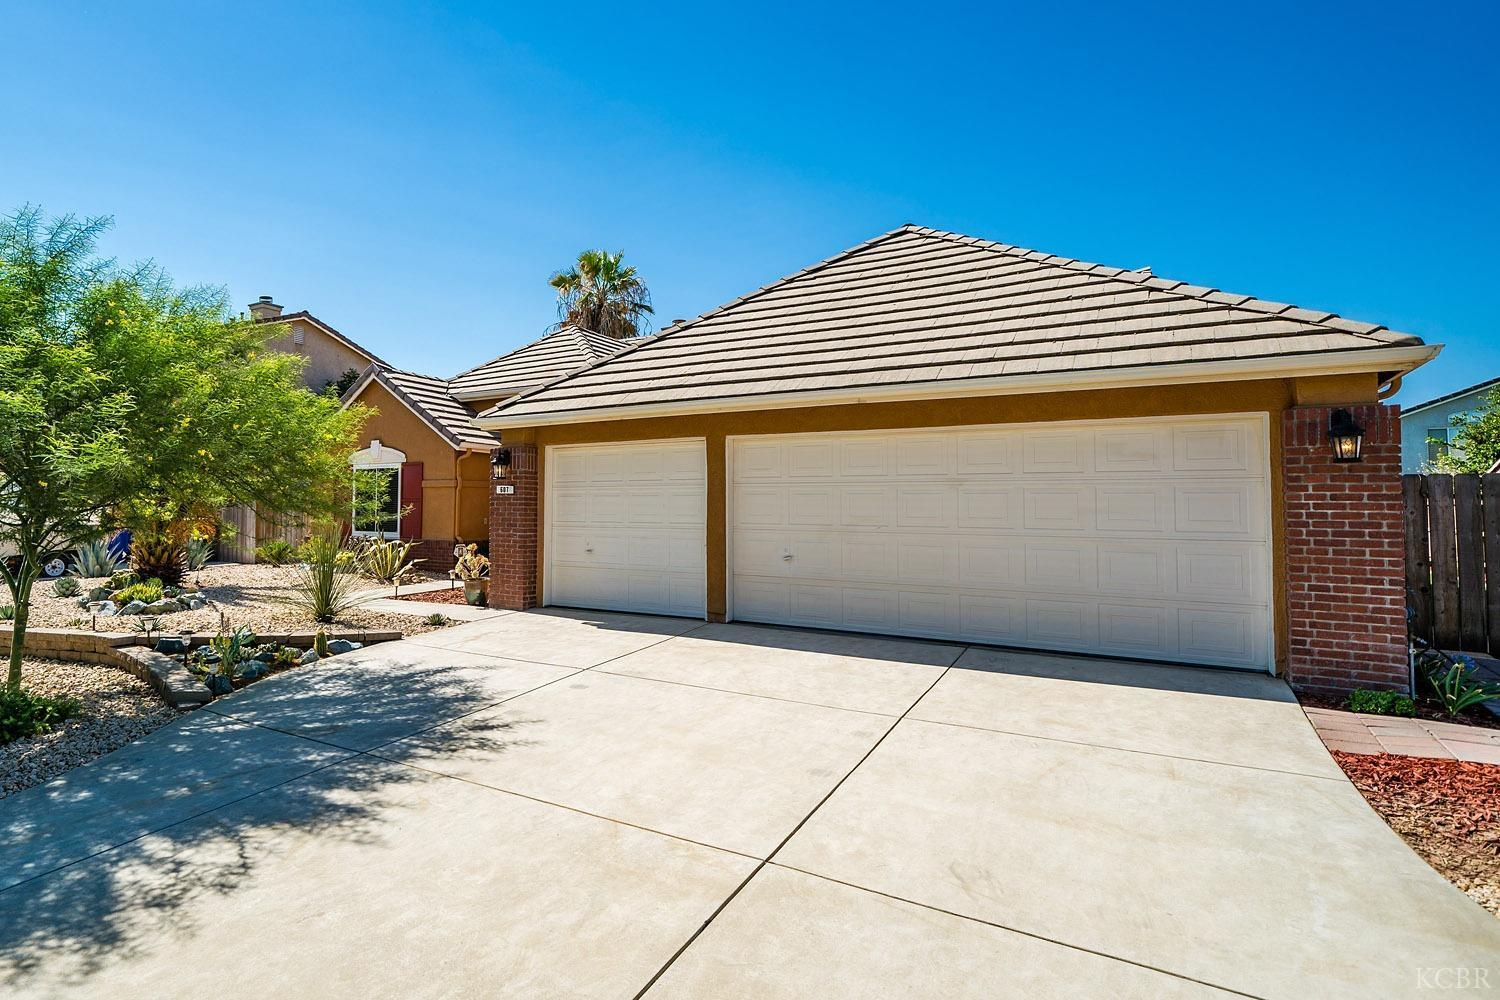 607 Brentwood Drive, LEMOORE, California 93245, 3 Bedrooms Bedrooms, ,2 BathroomsBathrooms,Single Family,For Sale,607 Brentwood Drive,1,210542